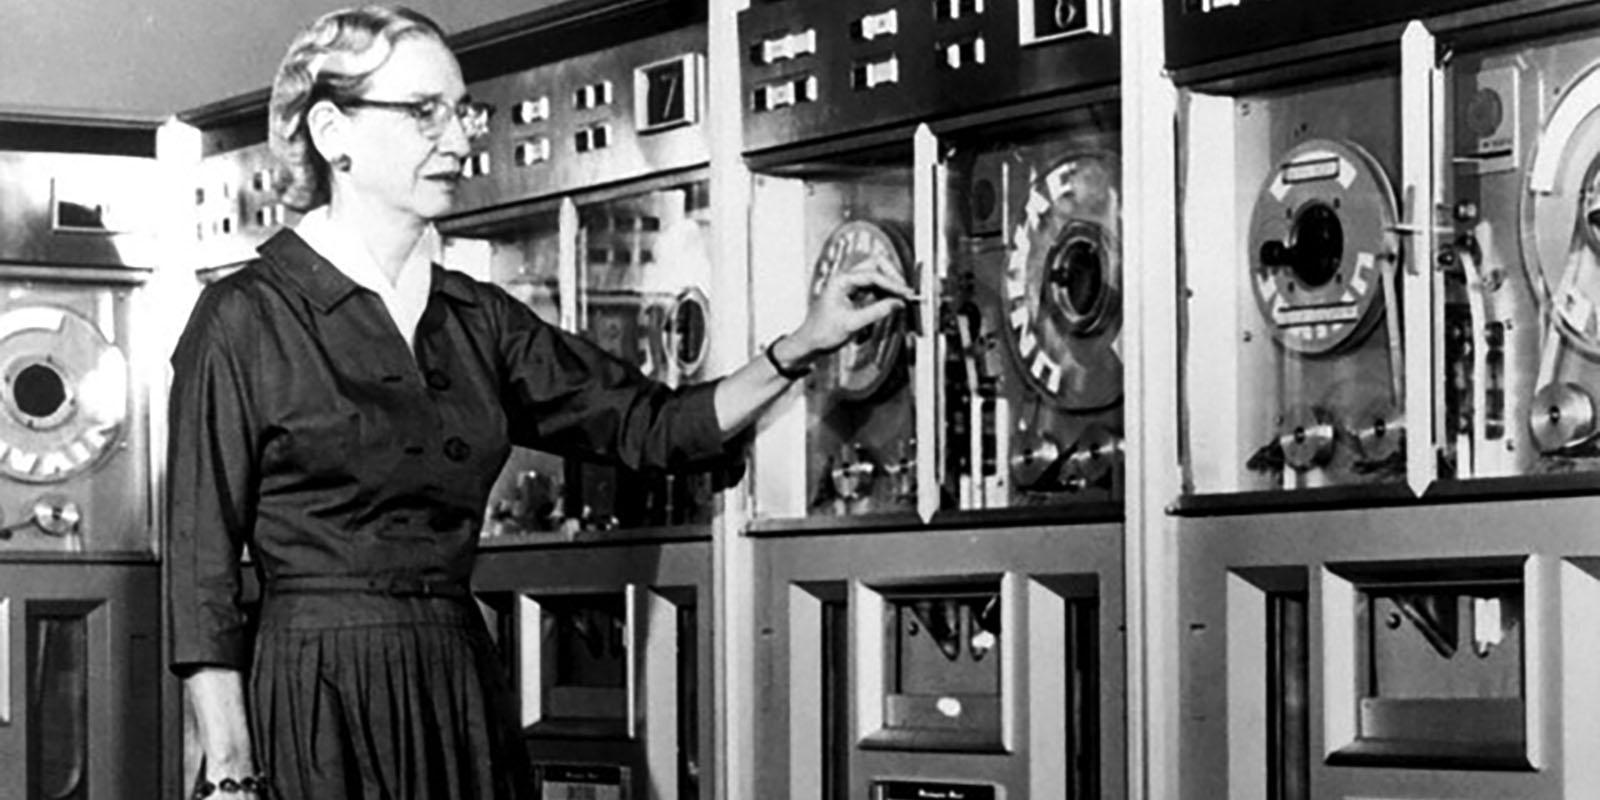 After serving in the U.S. Navy during World War II, Grace Hopper remained in the naval reserve. In 1952, her team at Remington Rand created the first compiler for computer languages, which was a precursor for COBOL. In this 1960 report, Hopper stands next to a mainframe computer that ran using COBOL. Courtesy of the Computer History Museum